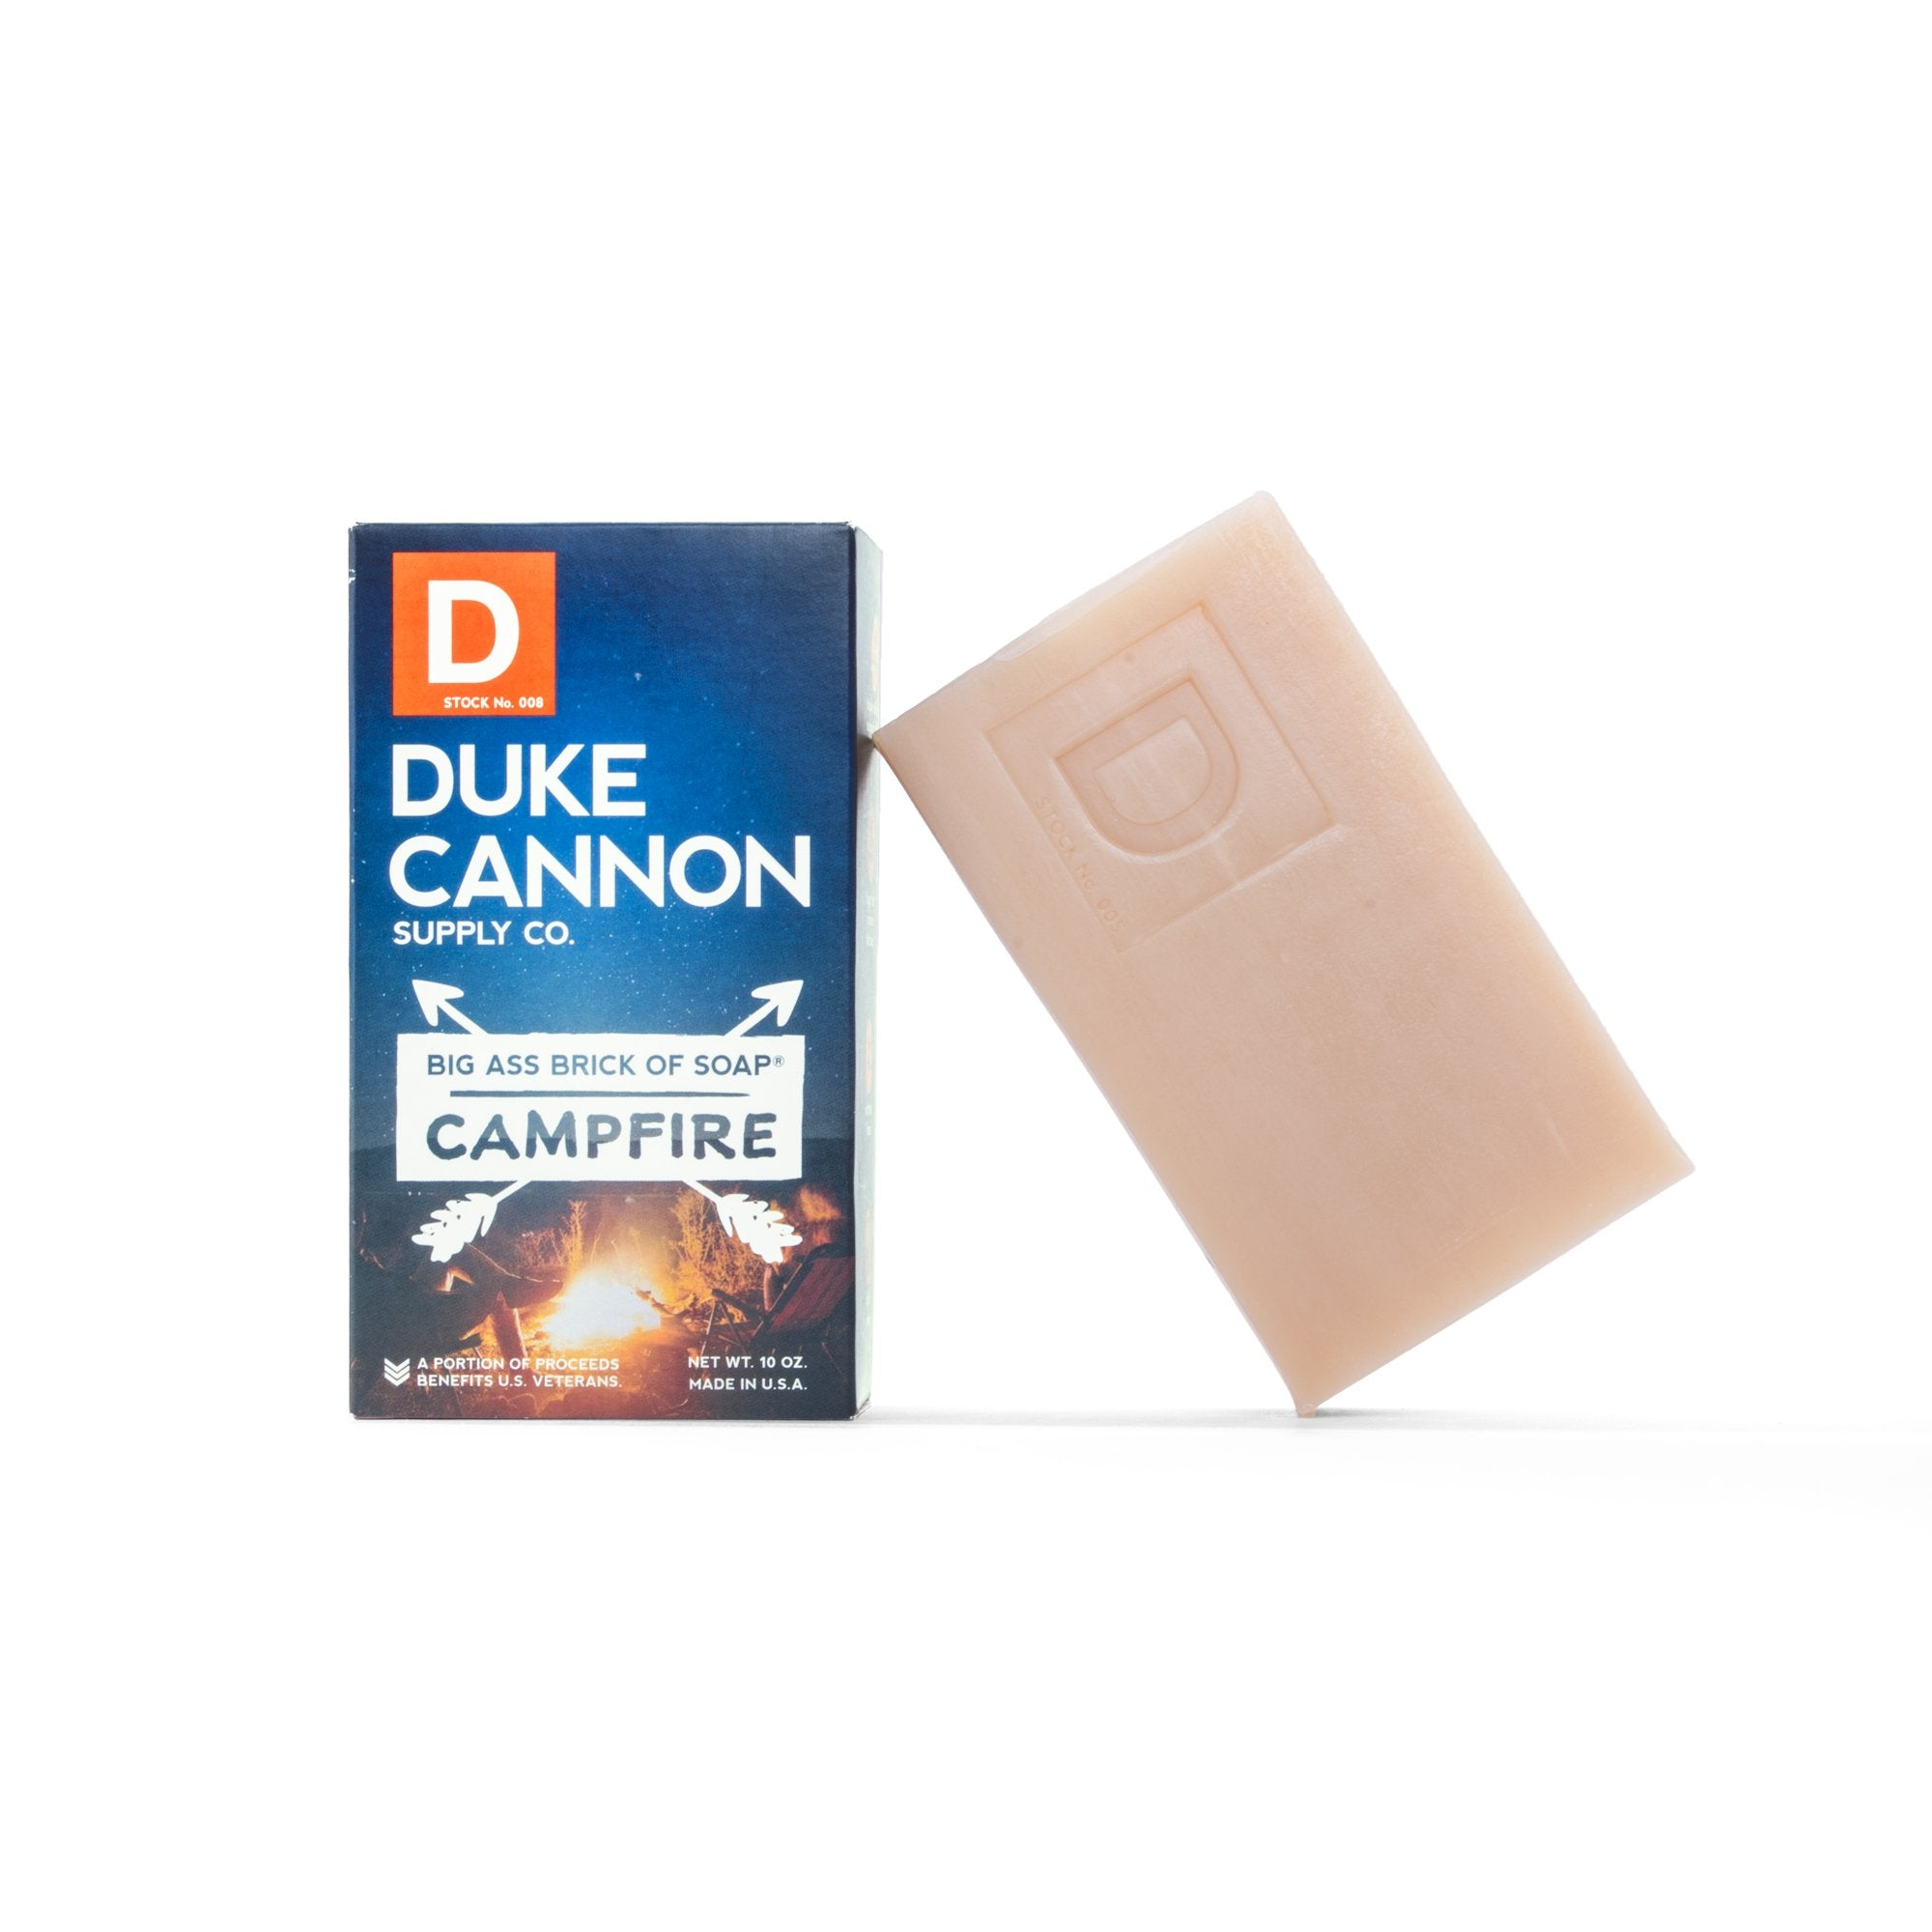 duke cannon big ass brick bar of soap campfire